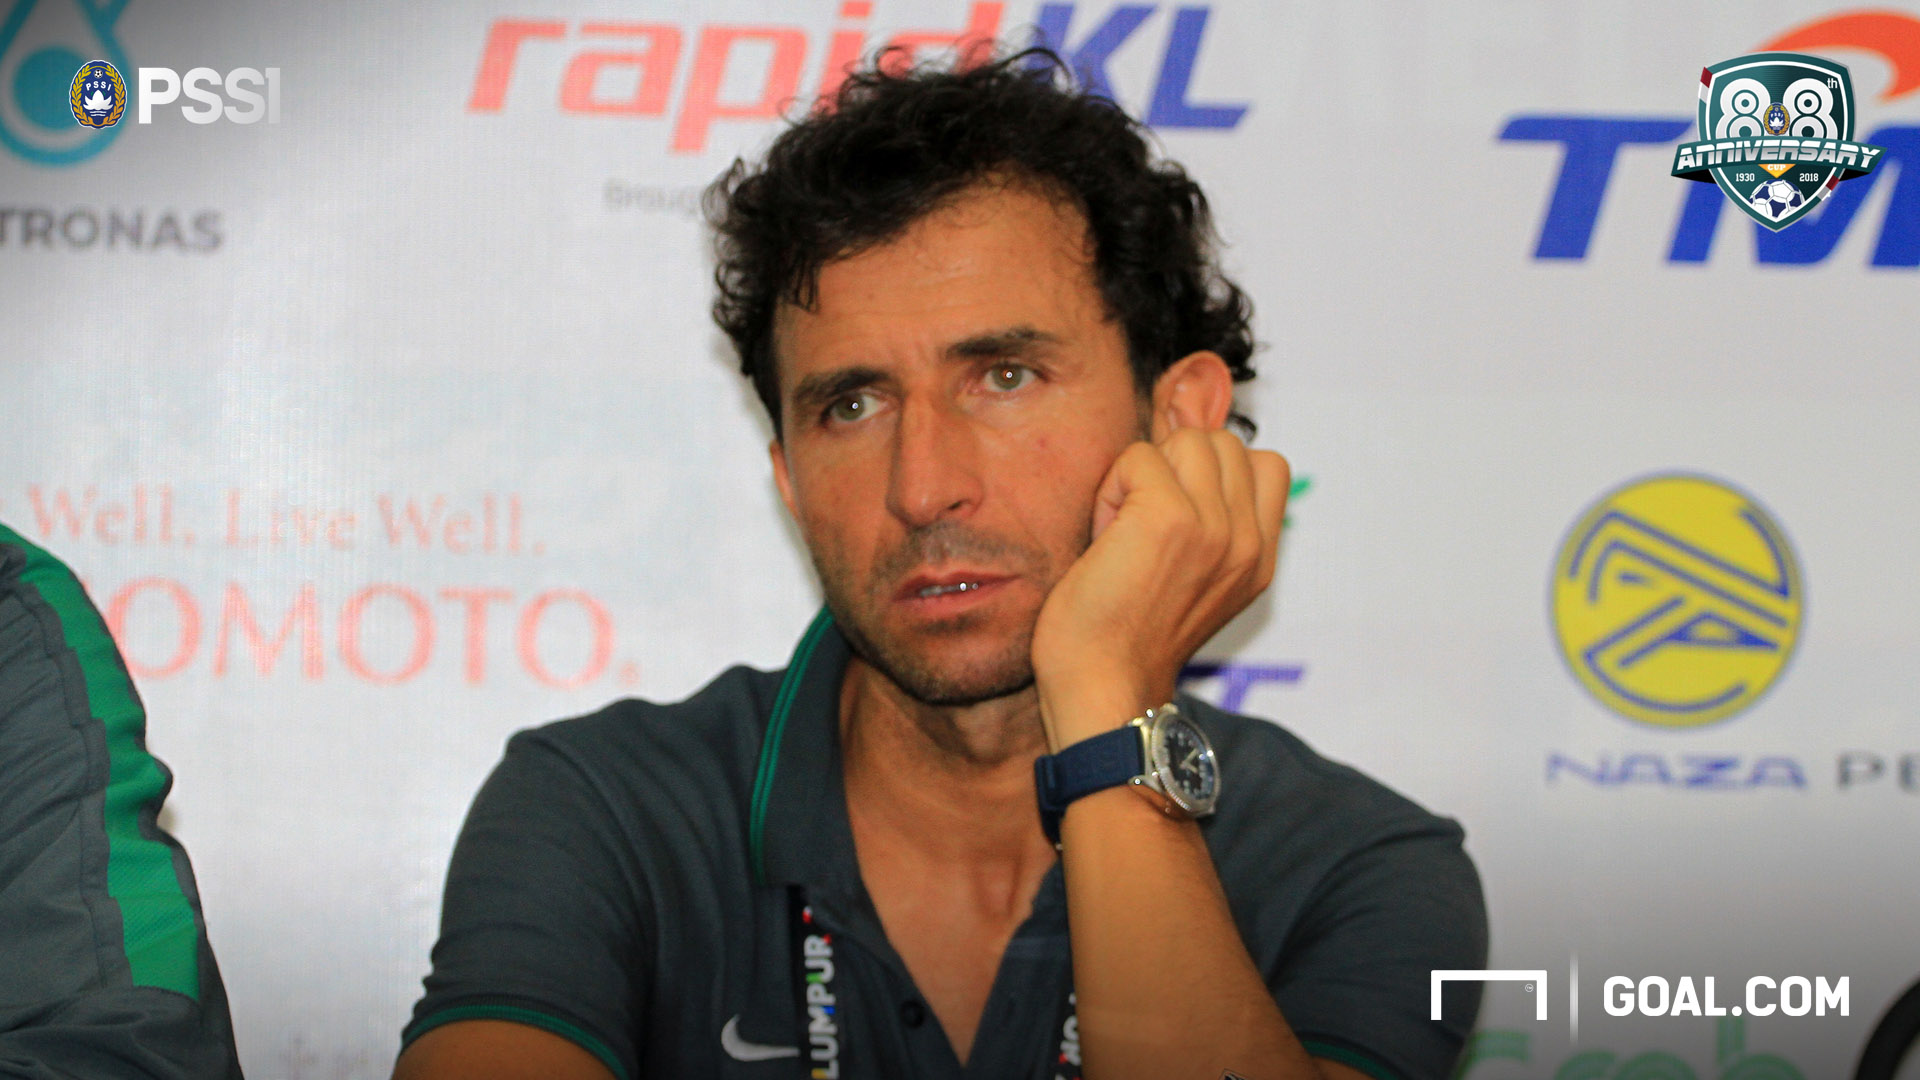 PSSI - Anniversary Cup - Luis Milla